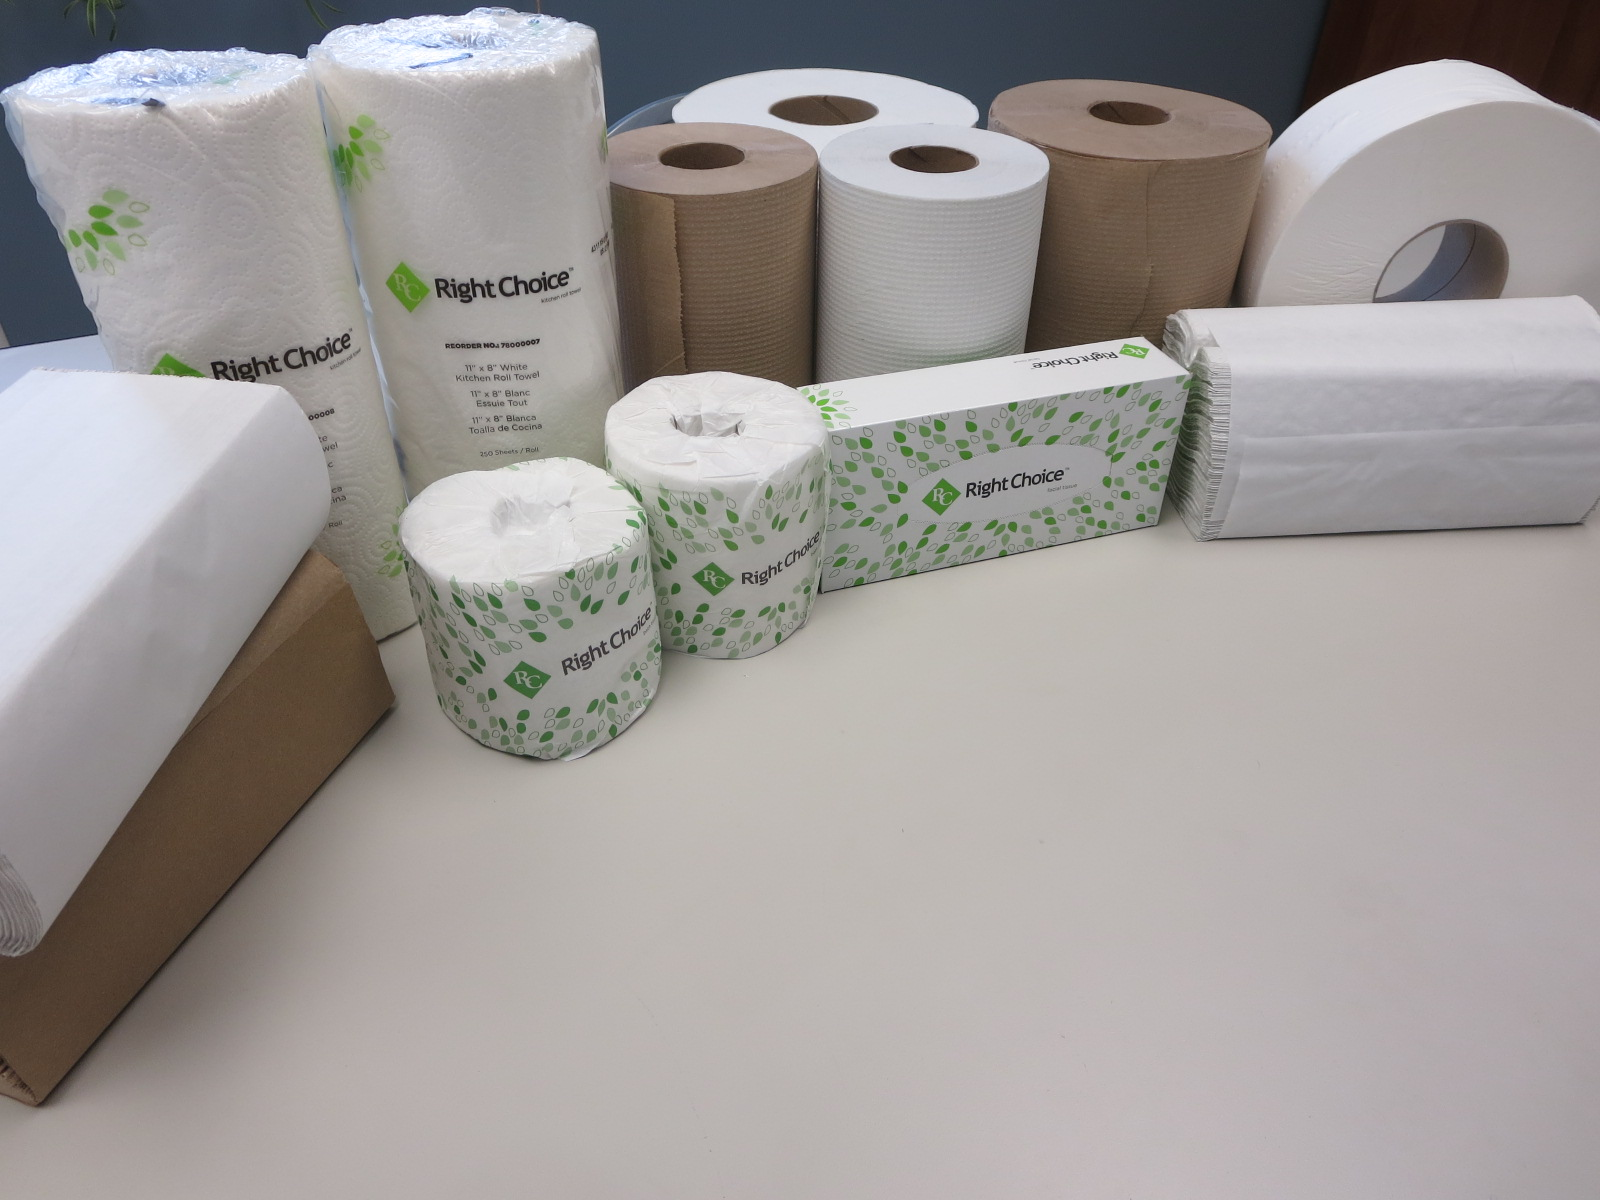 Right Choice™ Commercial Paper Wiping Products